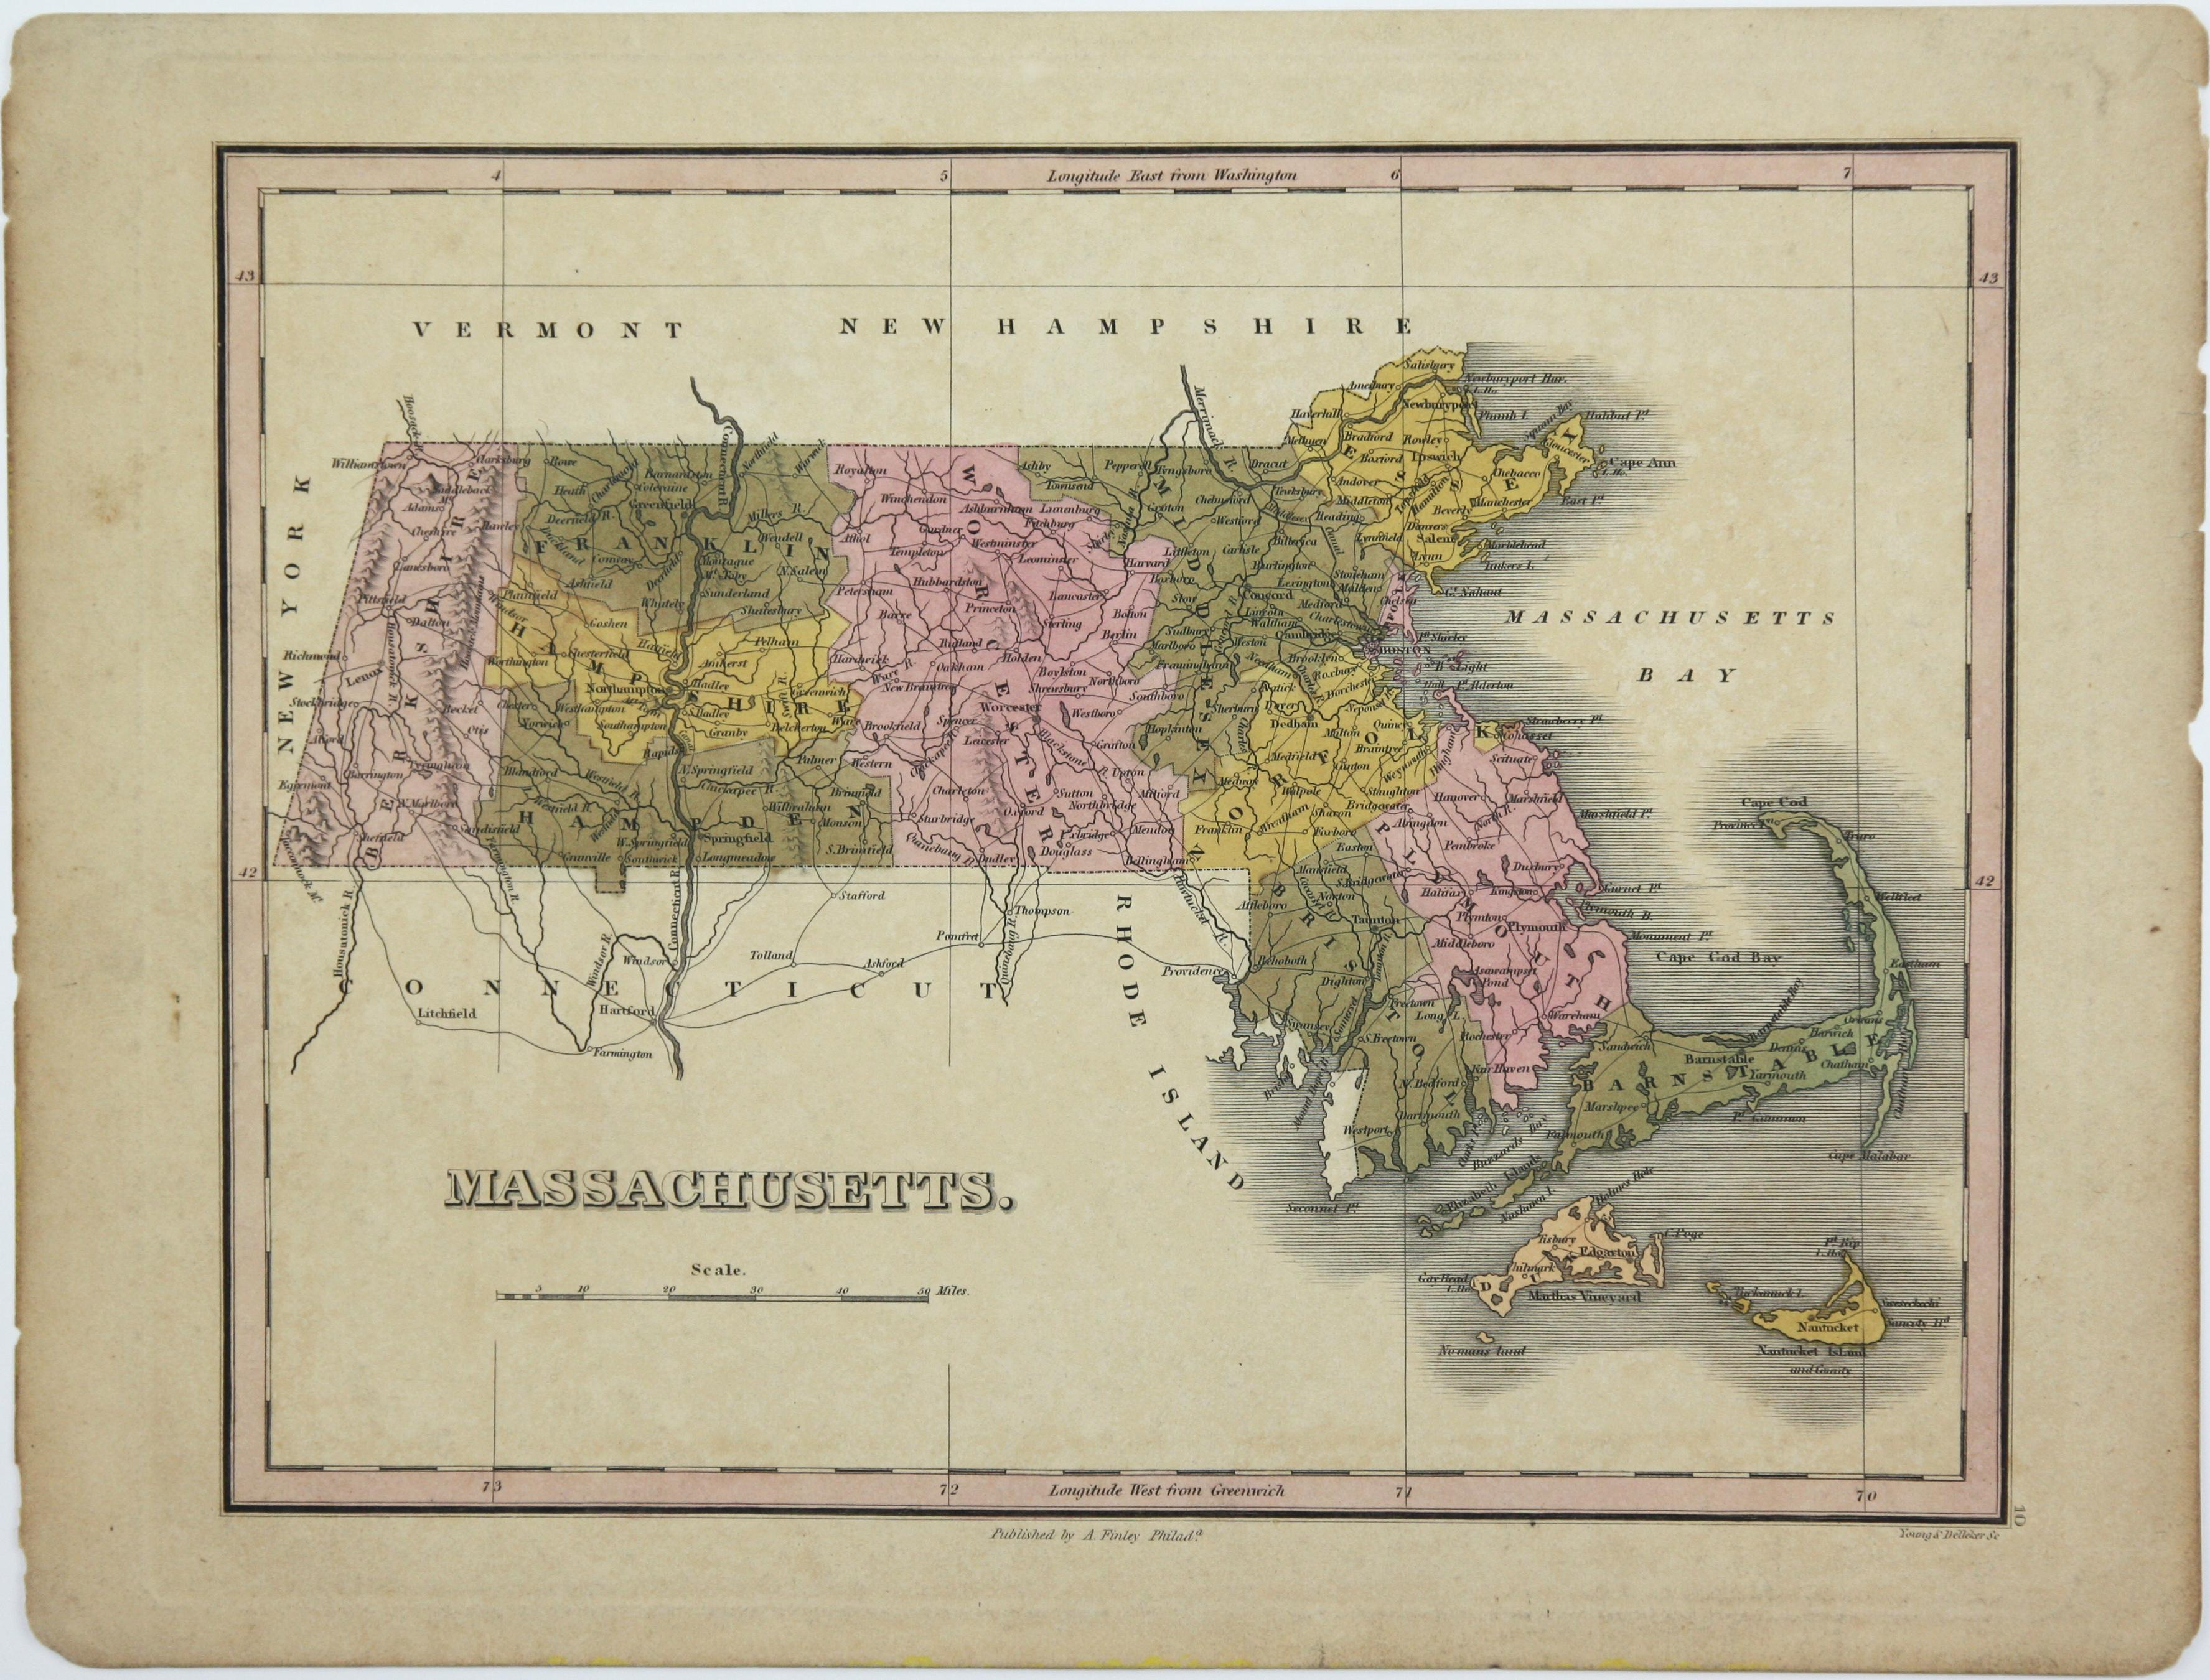 6, 19th Century hand-colored maps printed by Anthony Finley of Philadelphia 1824